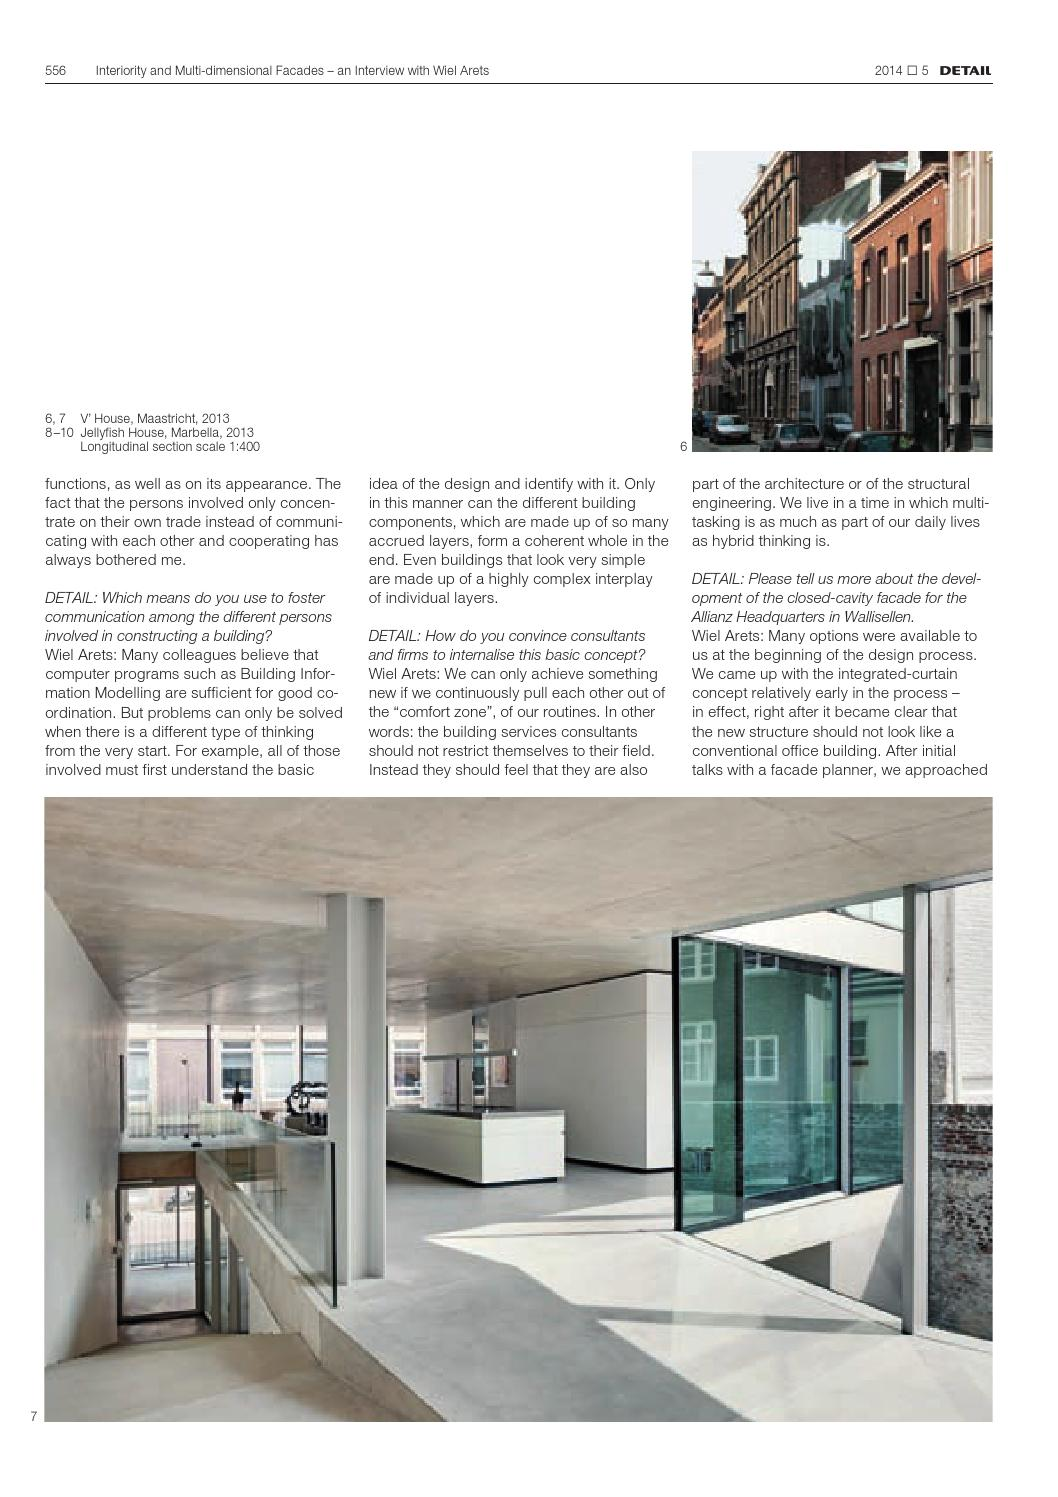 DETAIL English 5/2014 - Facades by DETAIL - issuu